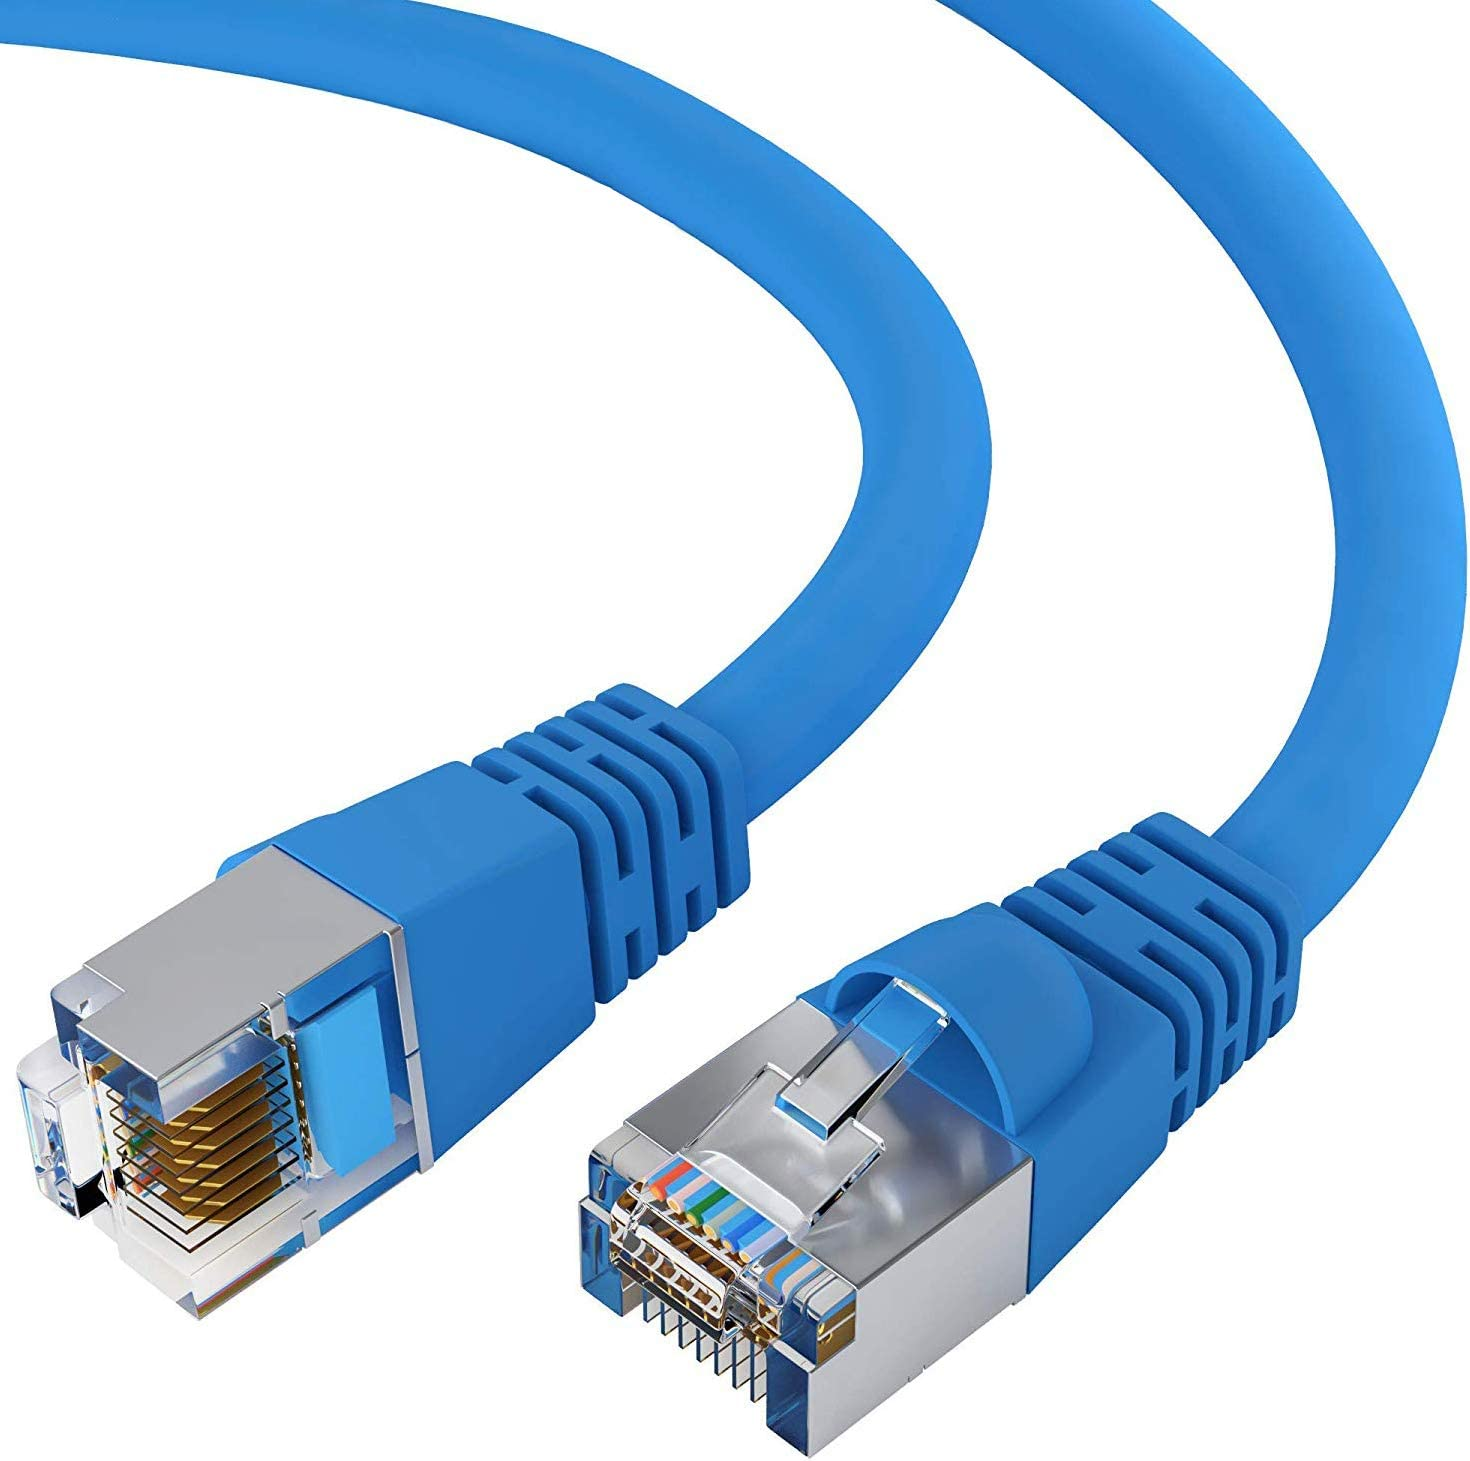 Cat5e Shielded Ethernet Cable RJ45 10Gbps High Speed LAN Internet Cord 1 Feet - Blue FTP Computer Network Cable with Snagless Connector Available in 28 Lengths and 10 Colors GOWOS 100-Pack